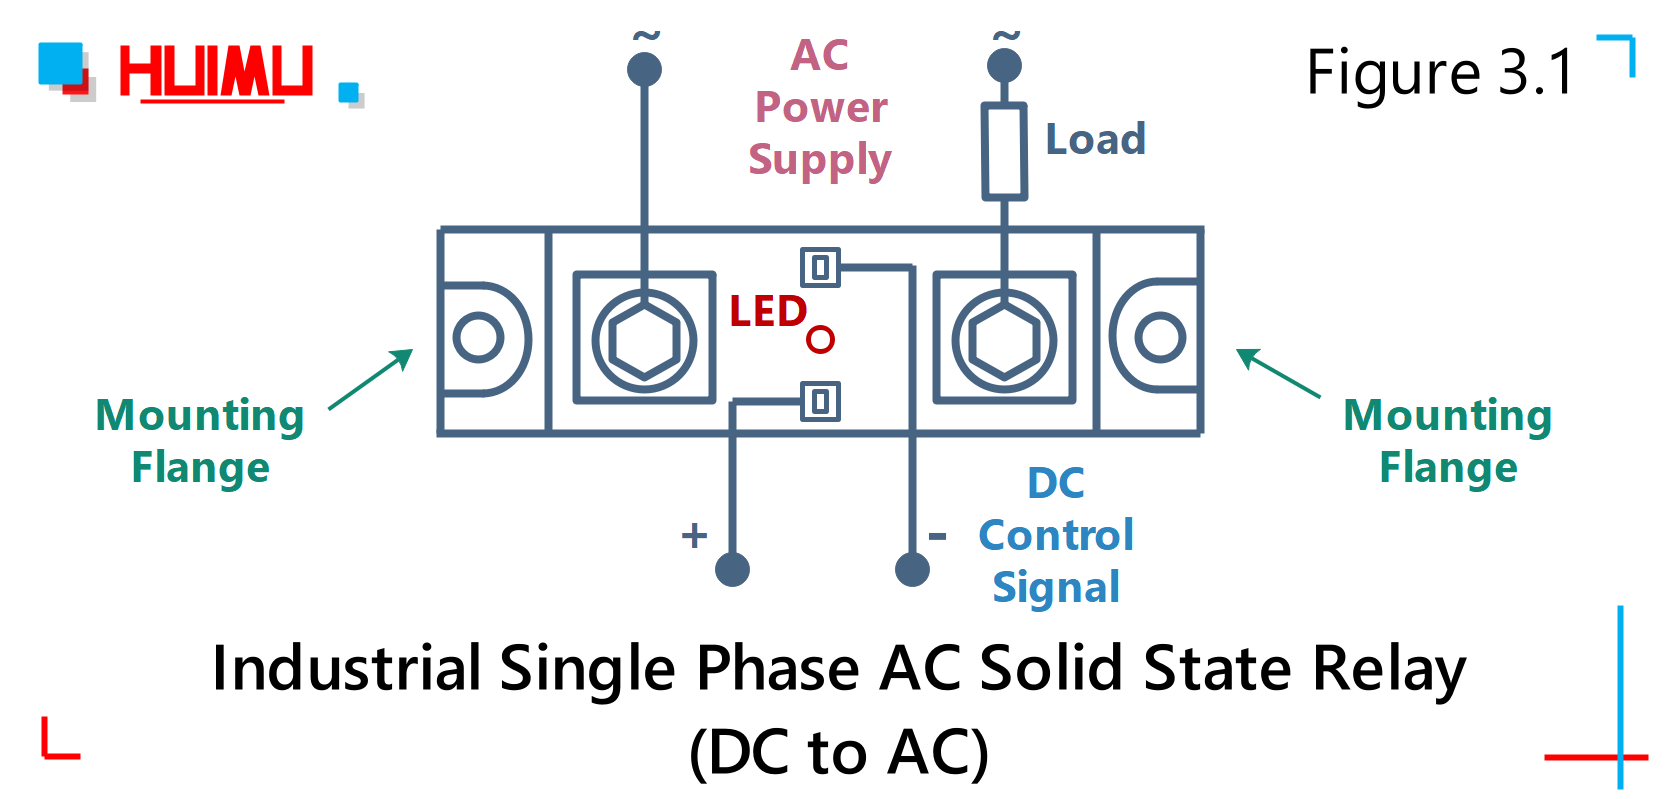 industrial three phase AC solid state relay (DC to AC) wiring diagram and circuit diagram Type 1